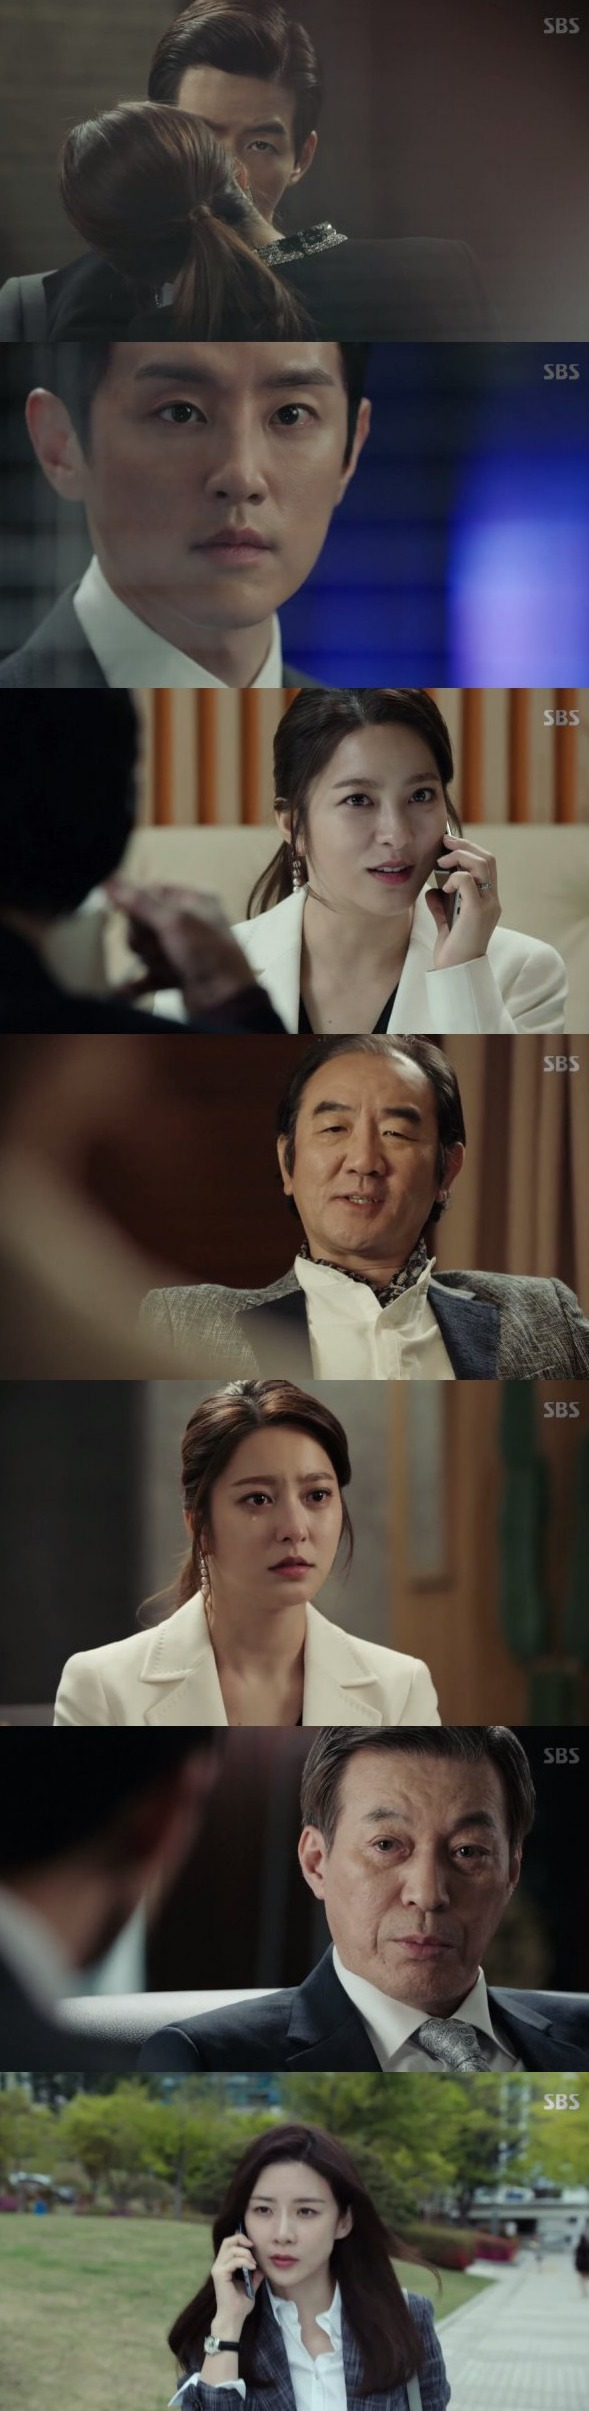 [Spoiler] Added episode 8 captures for the Korean drama 'Whisper'